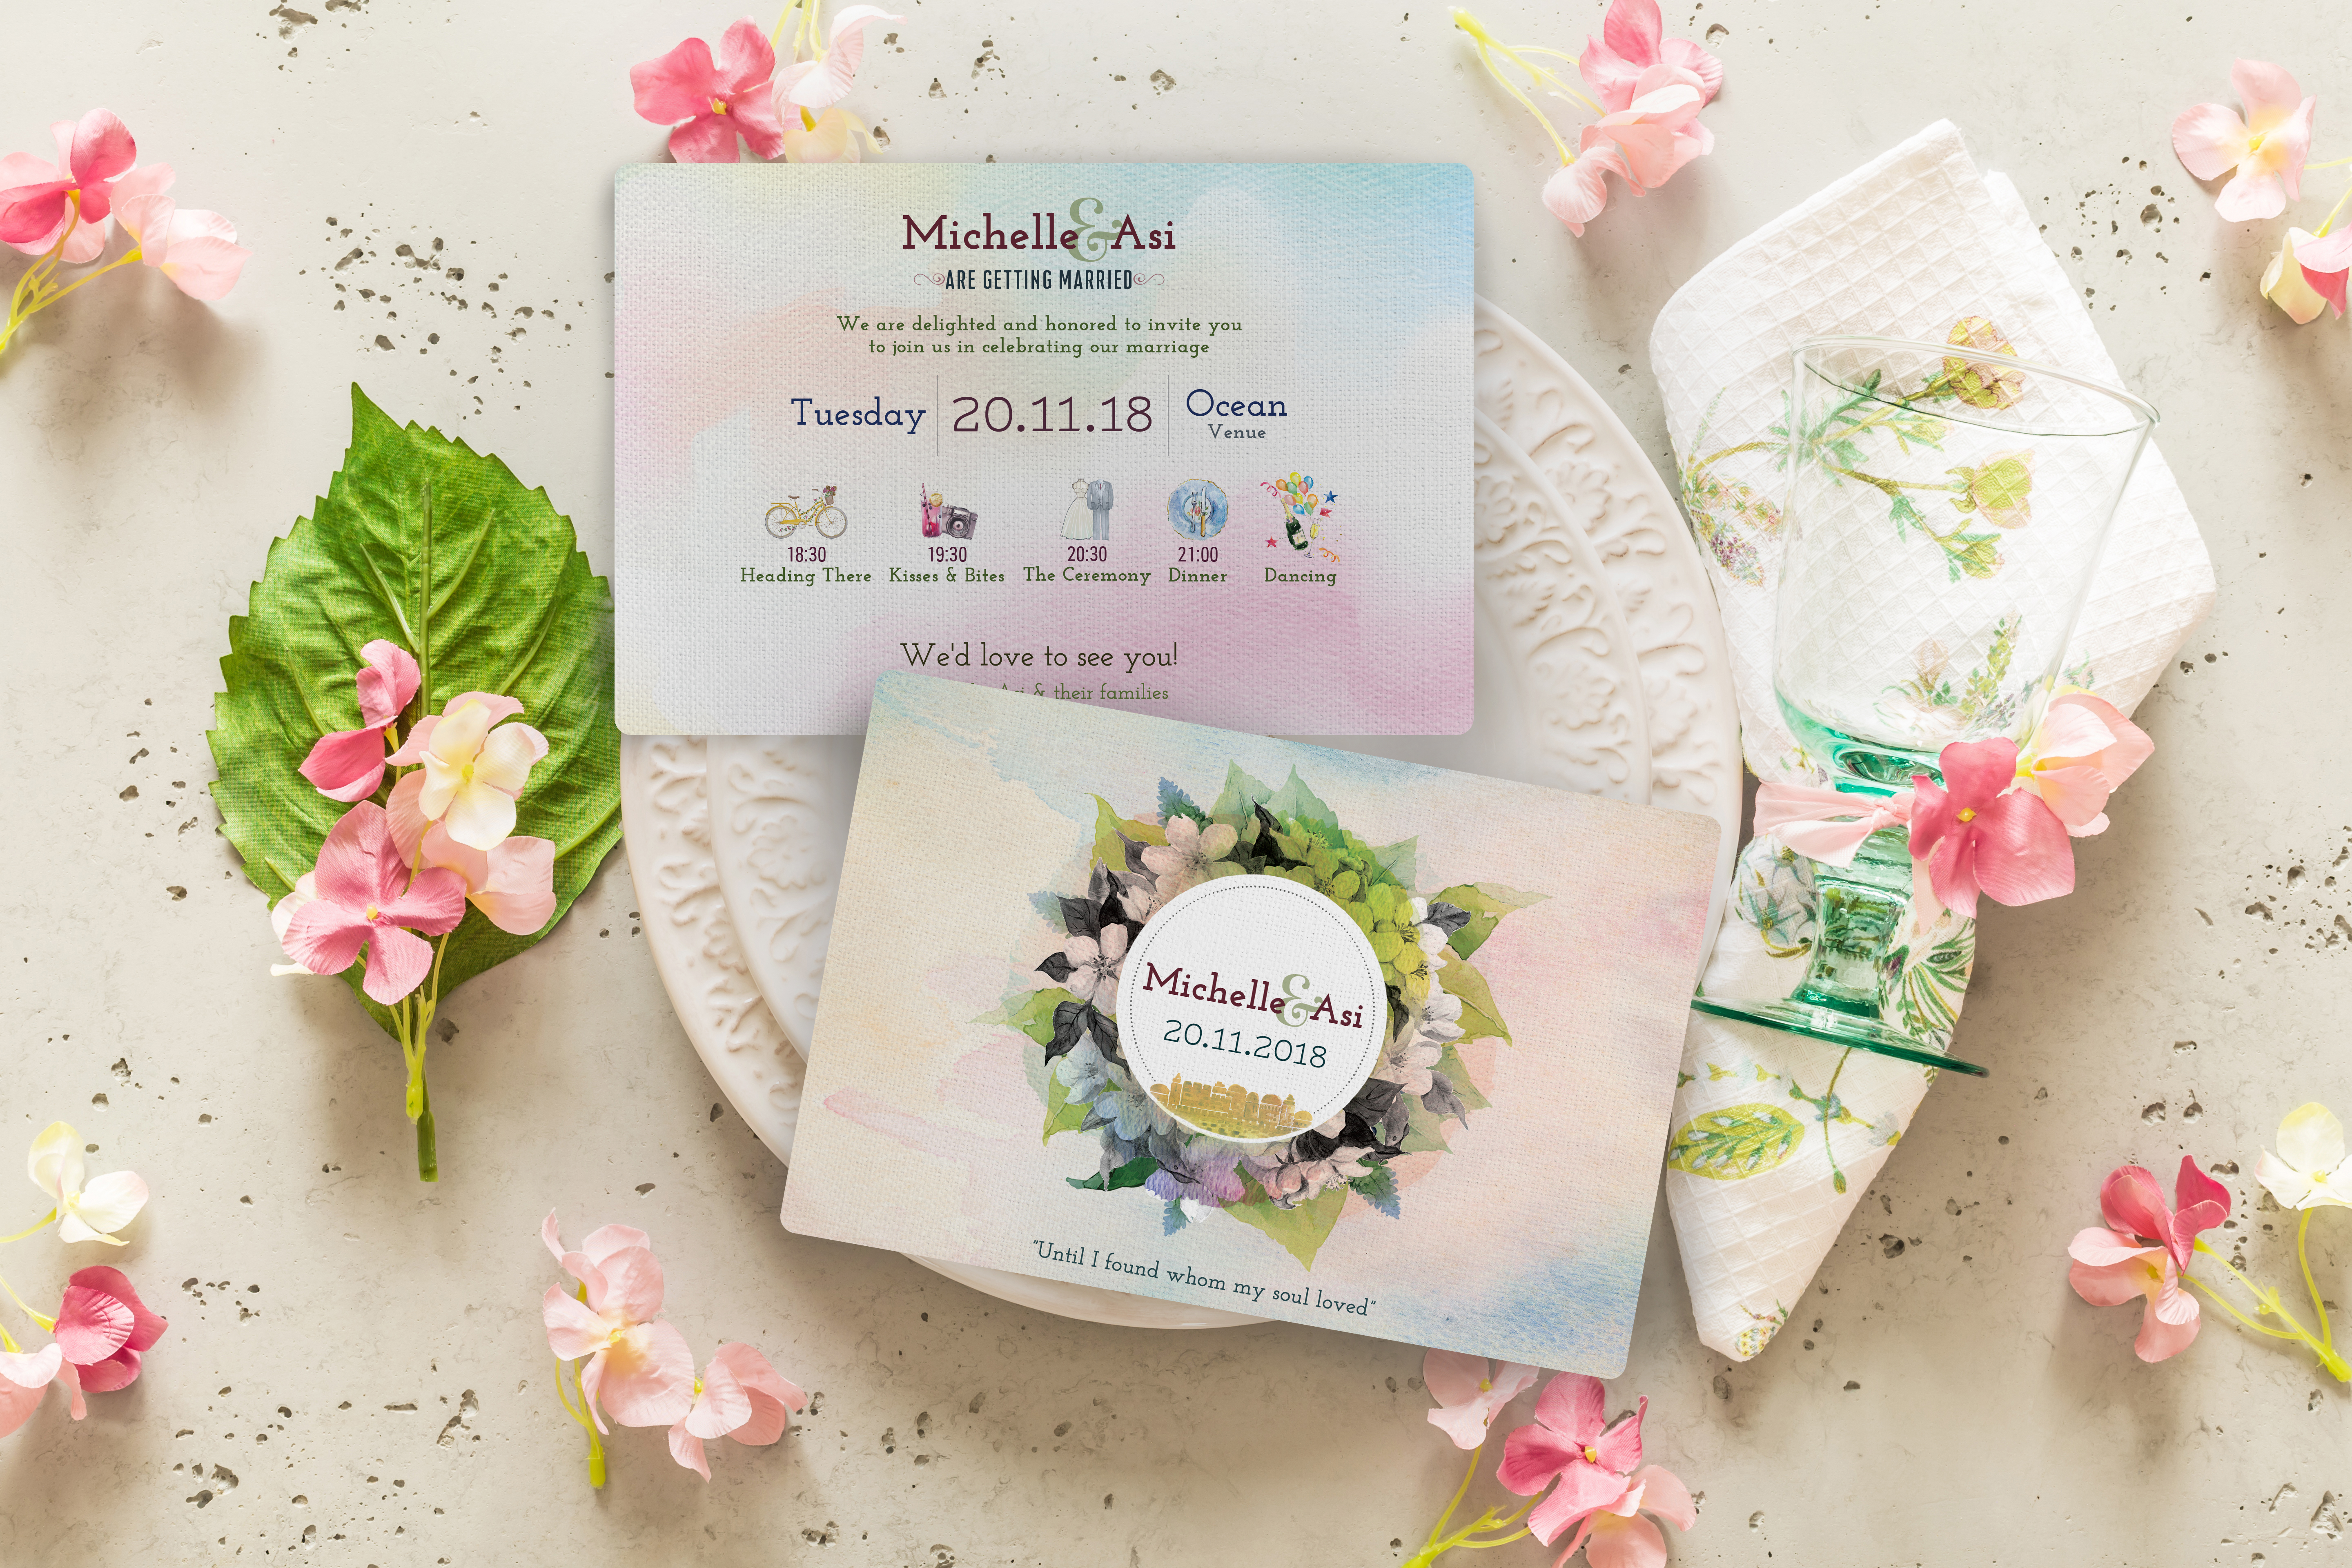 natalie_klug_wedding_invitation_romantic